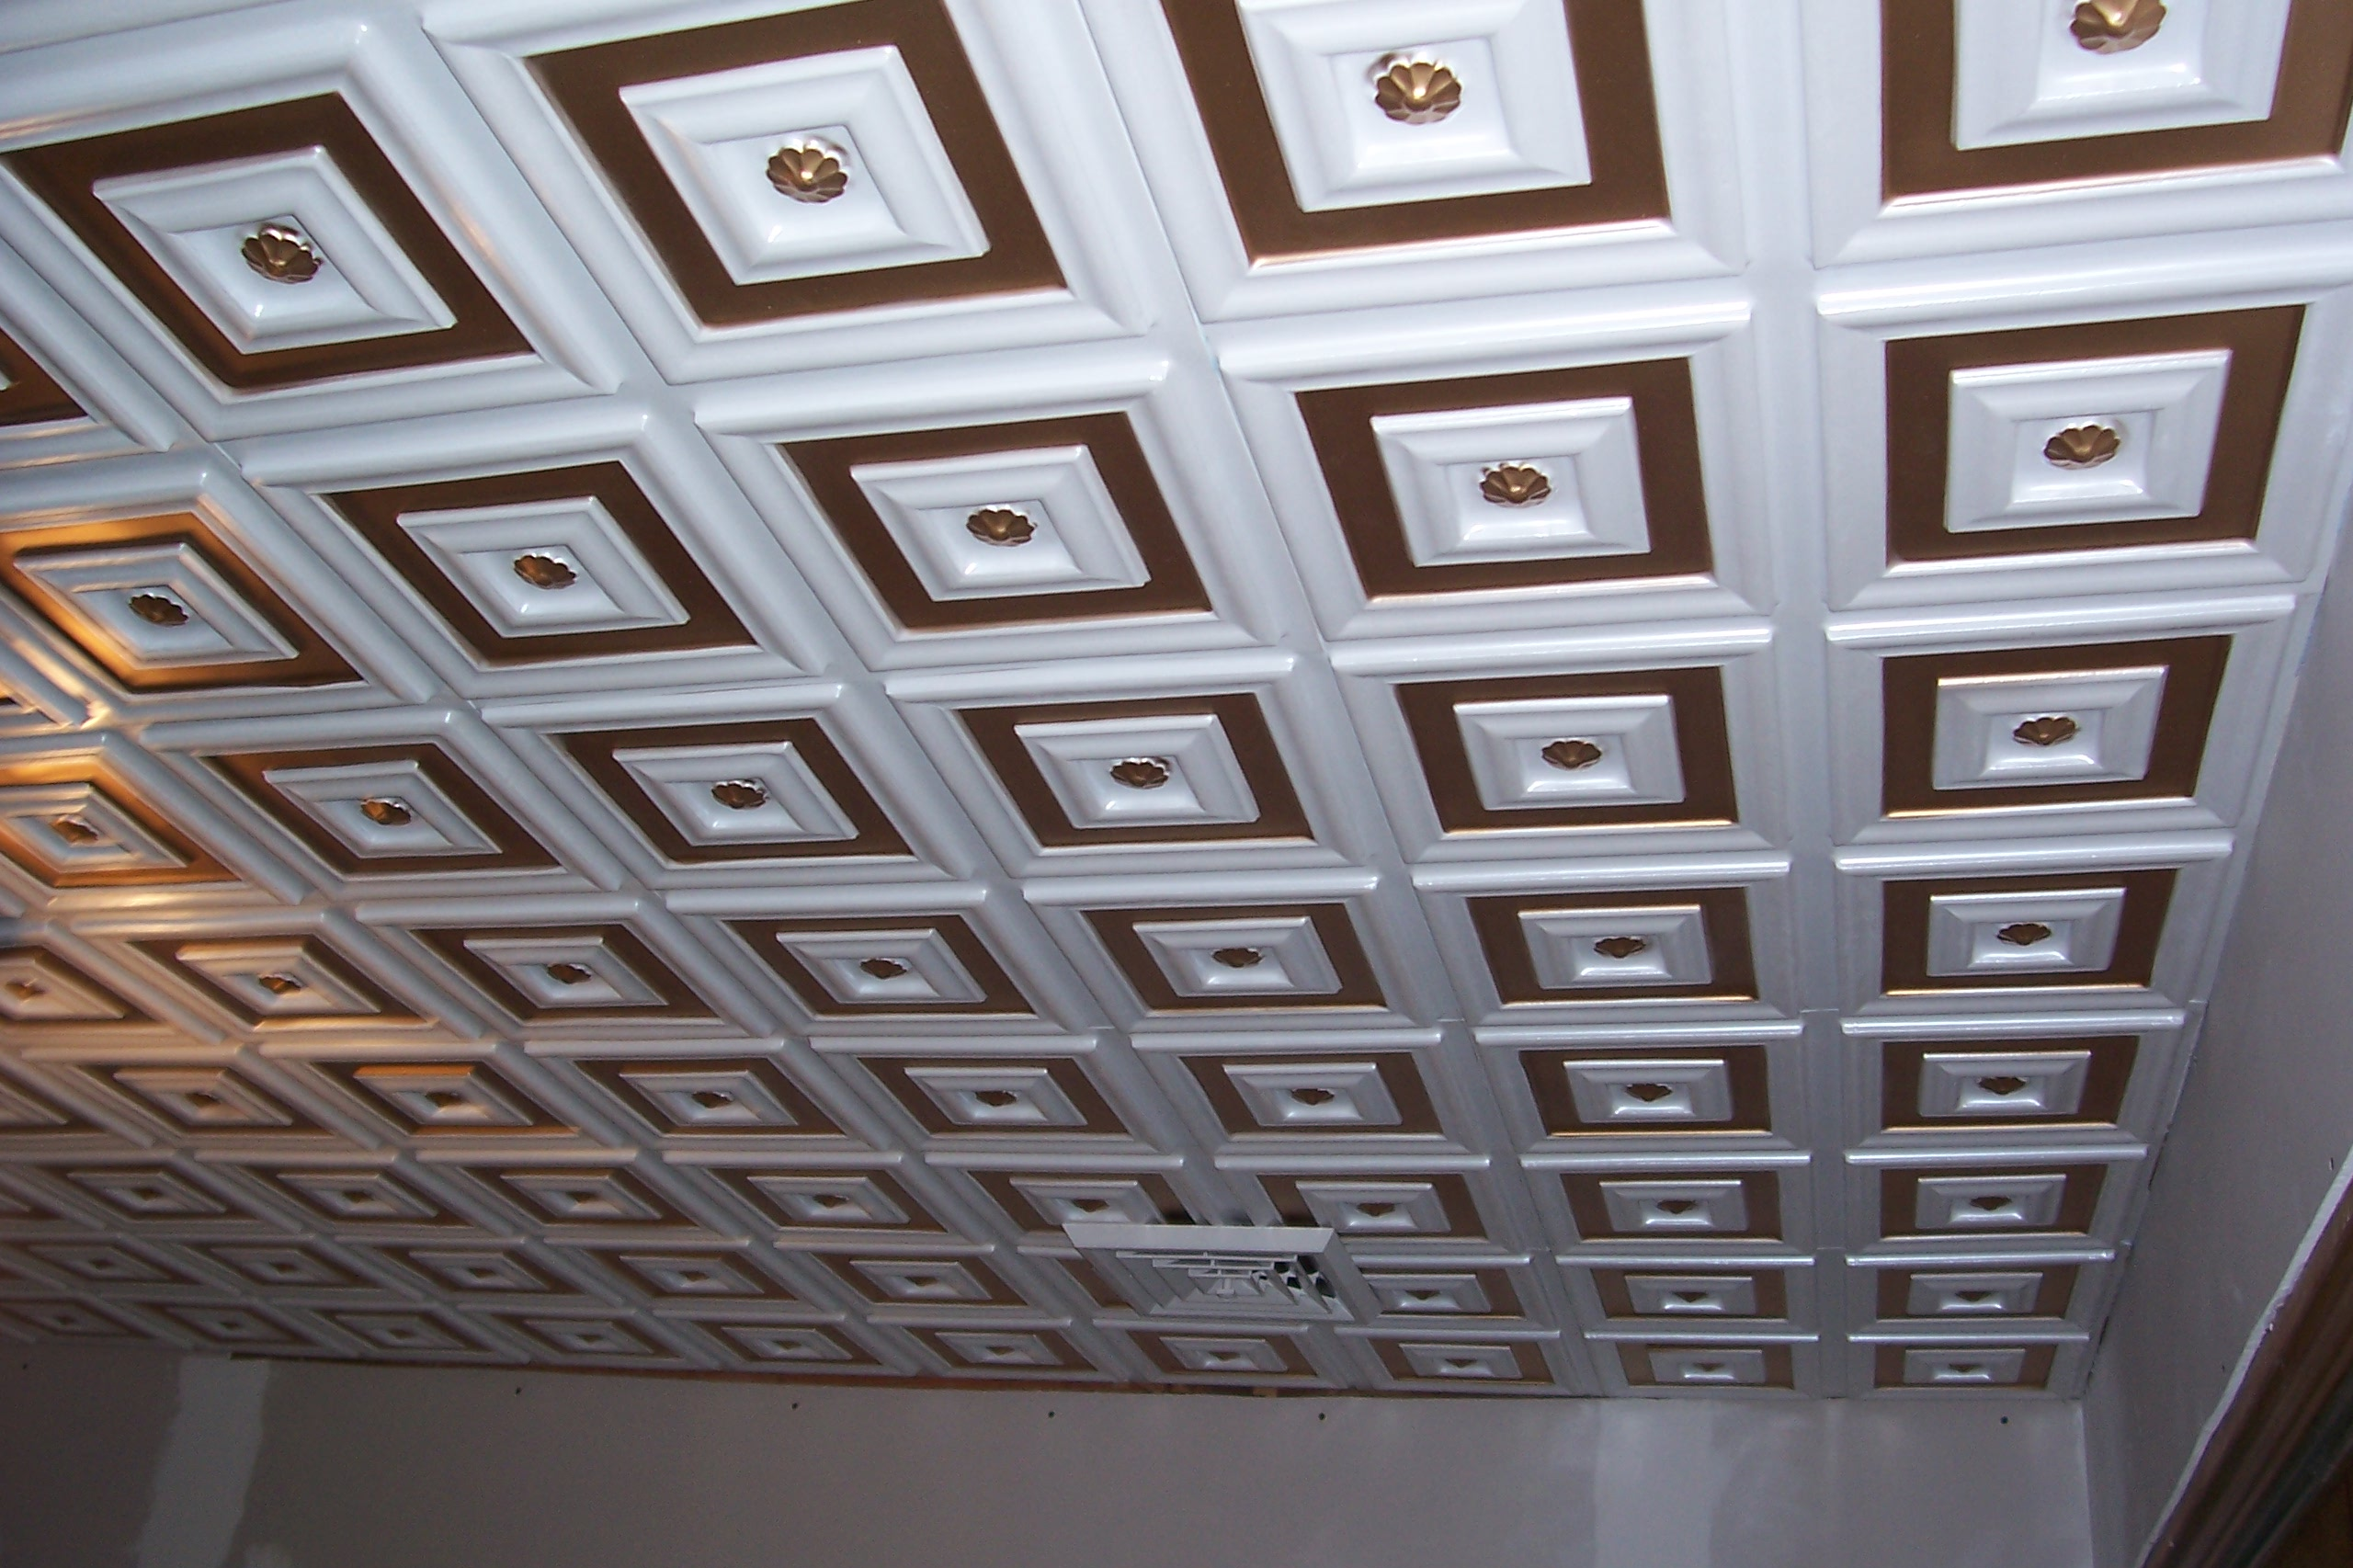 A beautiful ceiling with that daisy-center tile